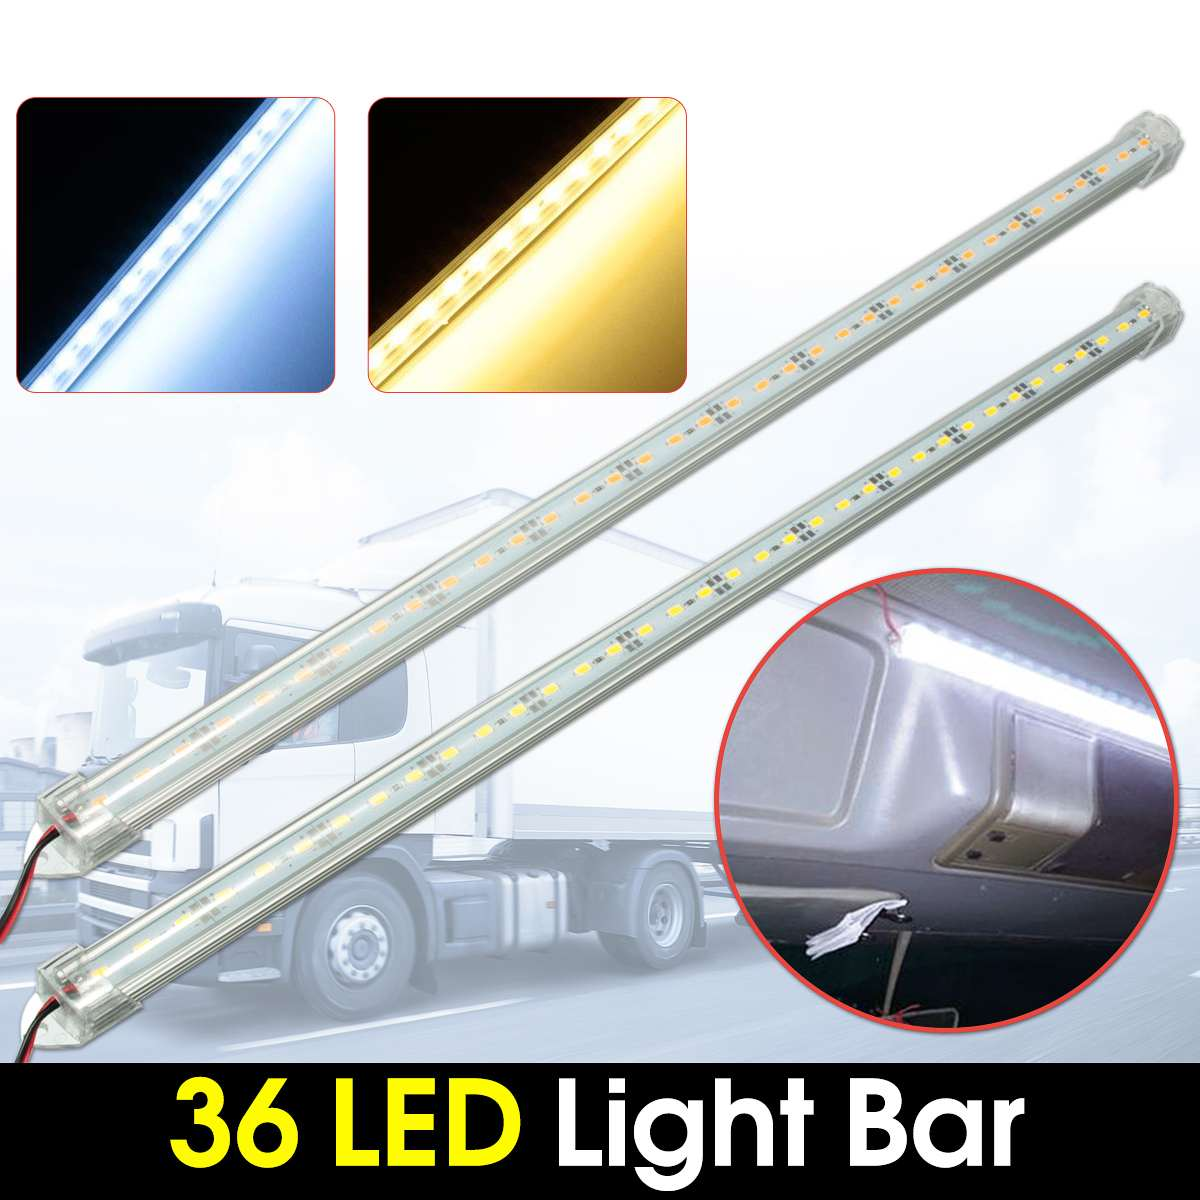 2pcs 50cm SMD 5630 36 LED 12V DC Car Interior Strip Light Bar LED Bar Van Boat Caravan Auto Warm Cold White PC Cover